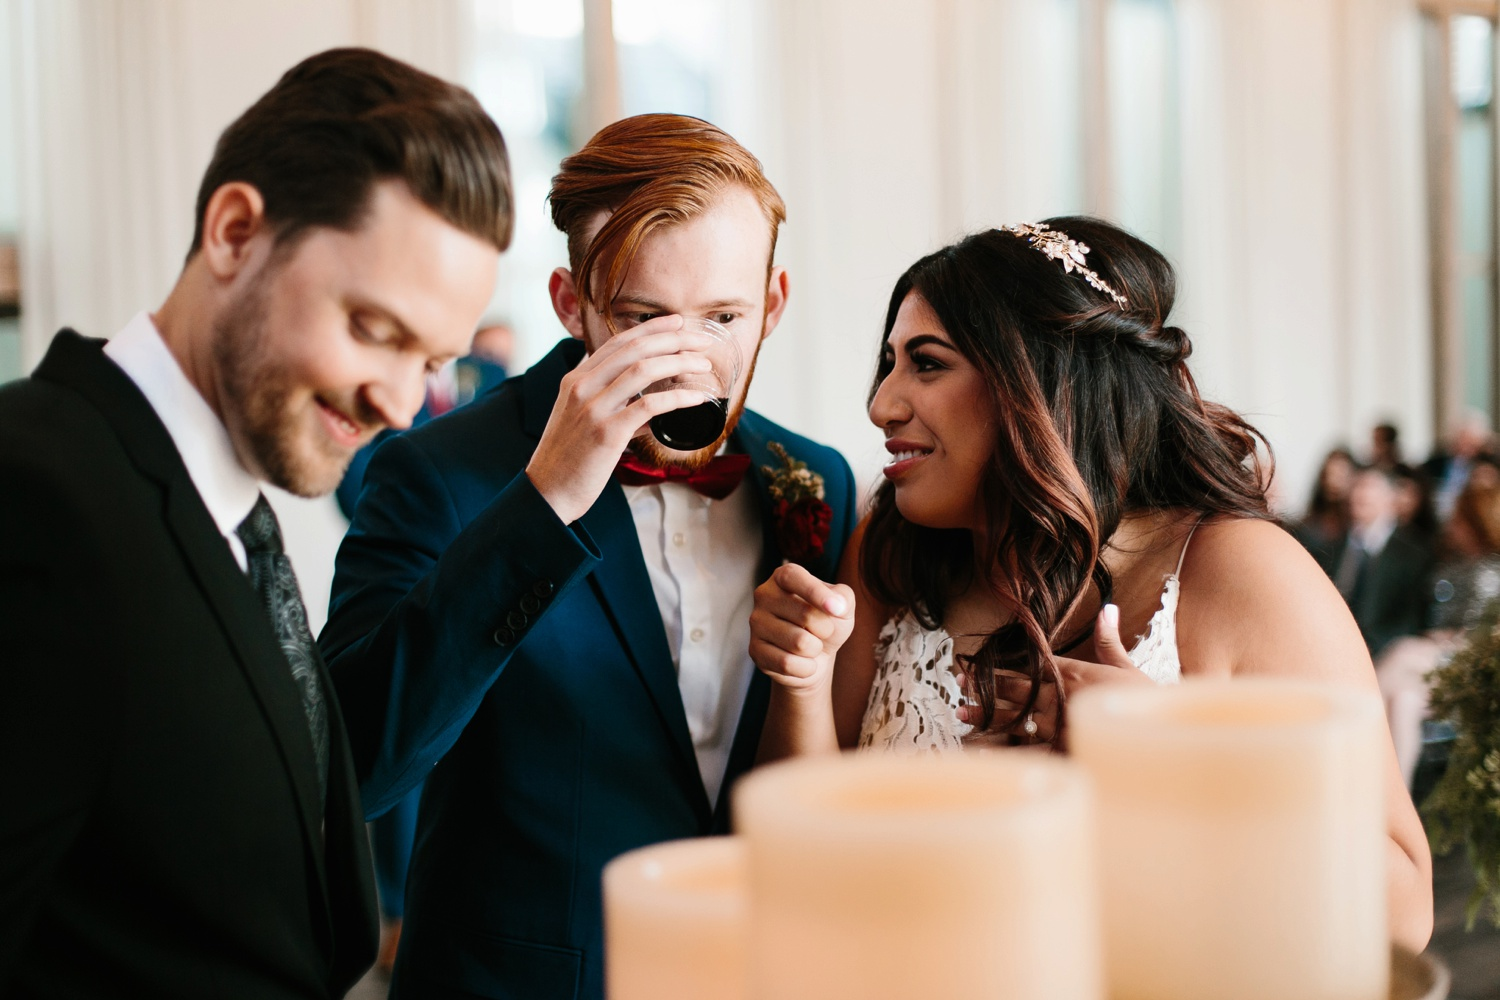 Grant + Lysette | a vibrant, deep burgundy and navy, and mixed metals wedding at Hidden Pines Chapel by North Texas Wedding Photographer Rachel Meagan Photography 100